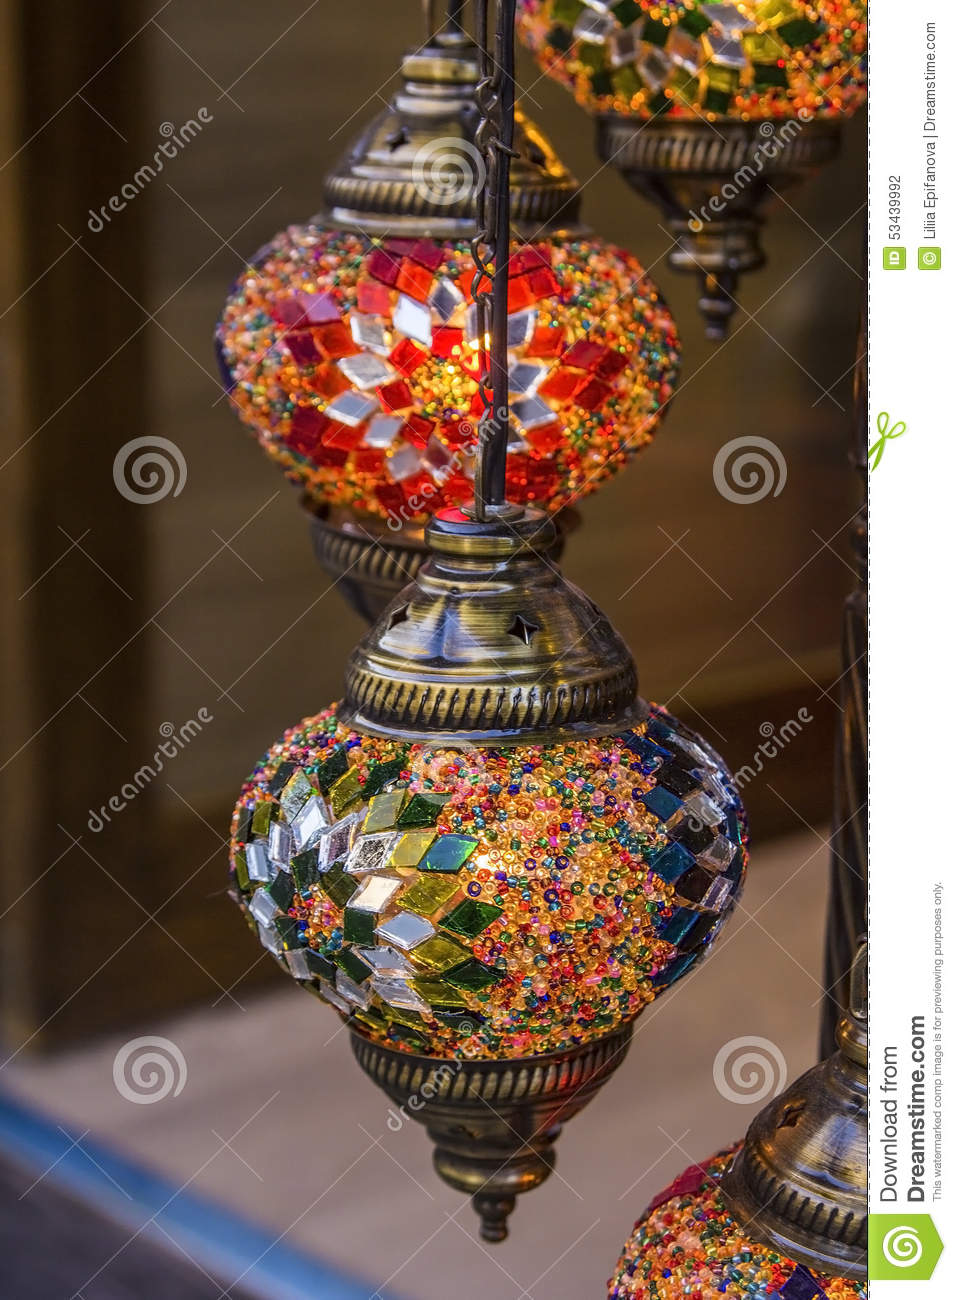 turkish decorative lamps of glass mosaics in the bazaar - Decorative Lamps